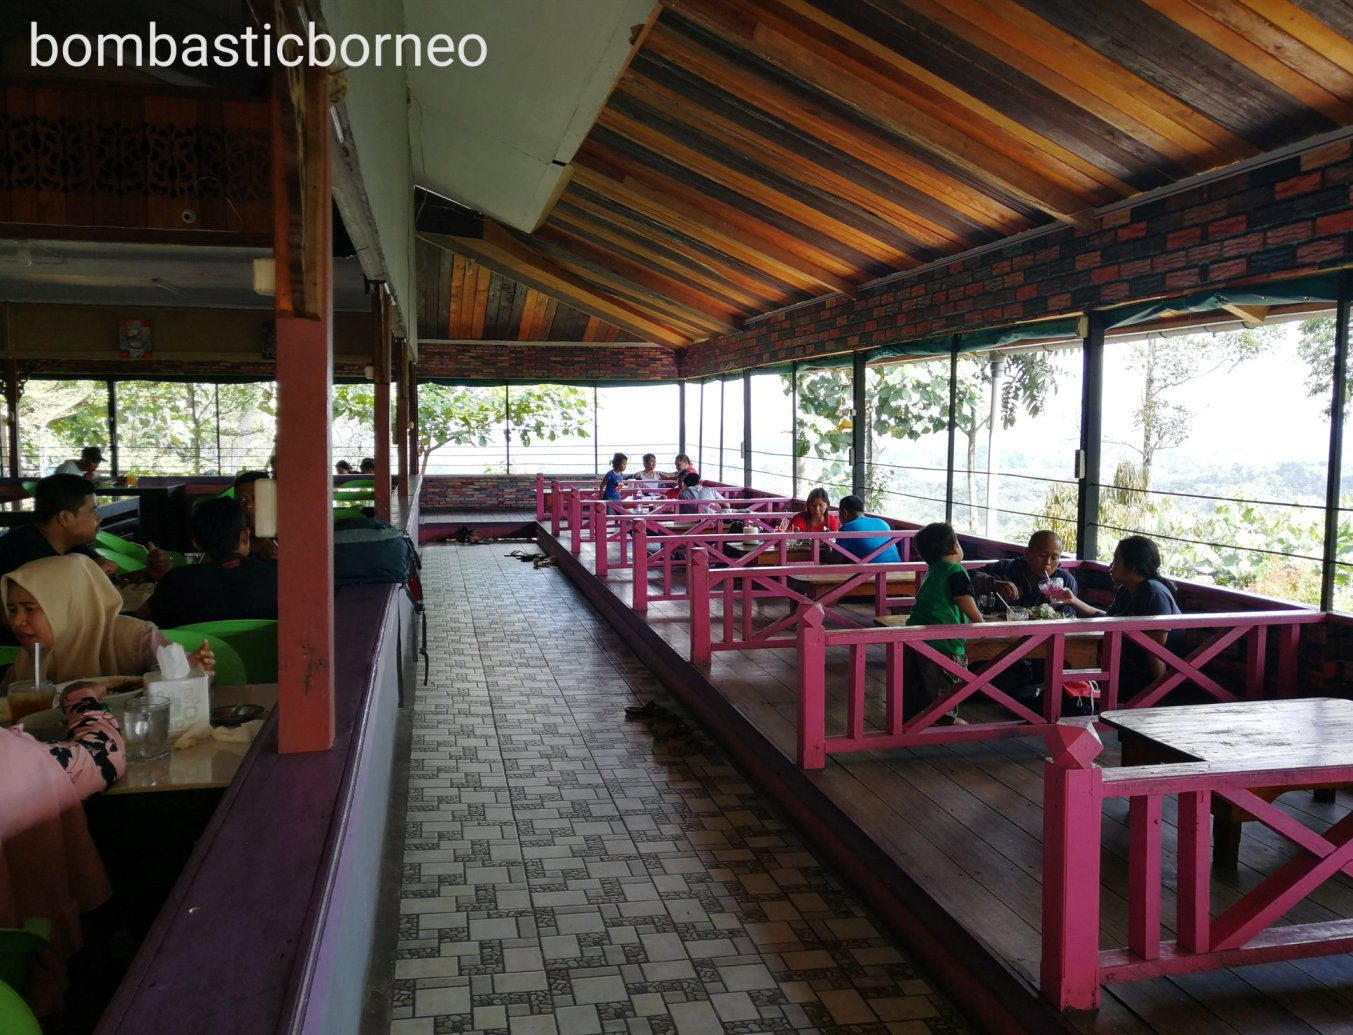 Sekadau, backpackers, destination, native, Dayak Desa, Sungai Kapuas, Borneo, Kalimantan Barat, tourism, tourist attraction, travel guide, Cross Border, 婆罗洲游踪, 印尼西加里曼丹